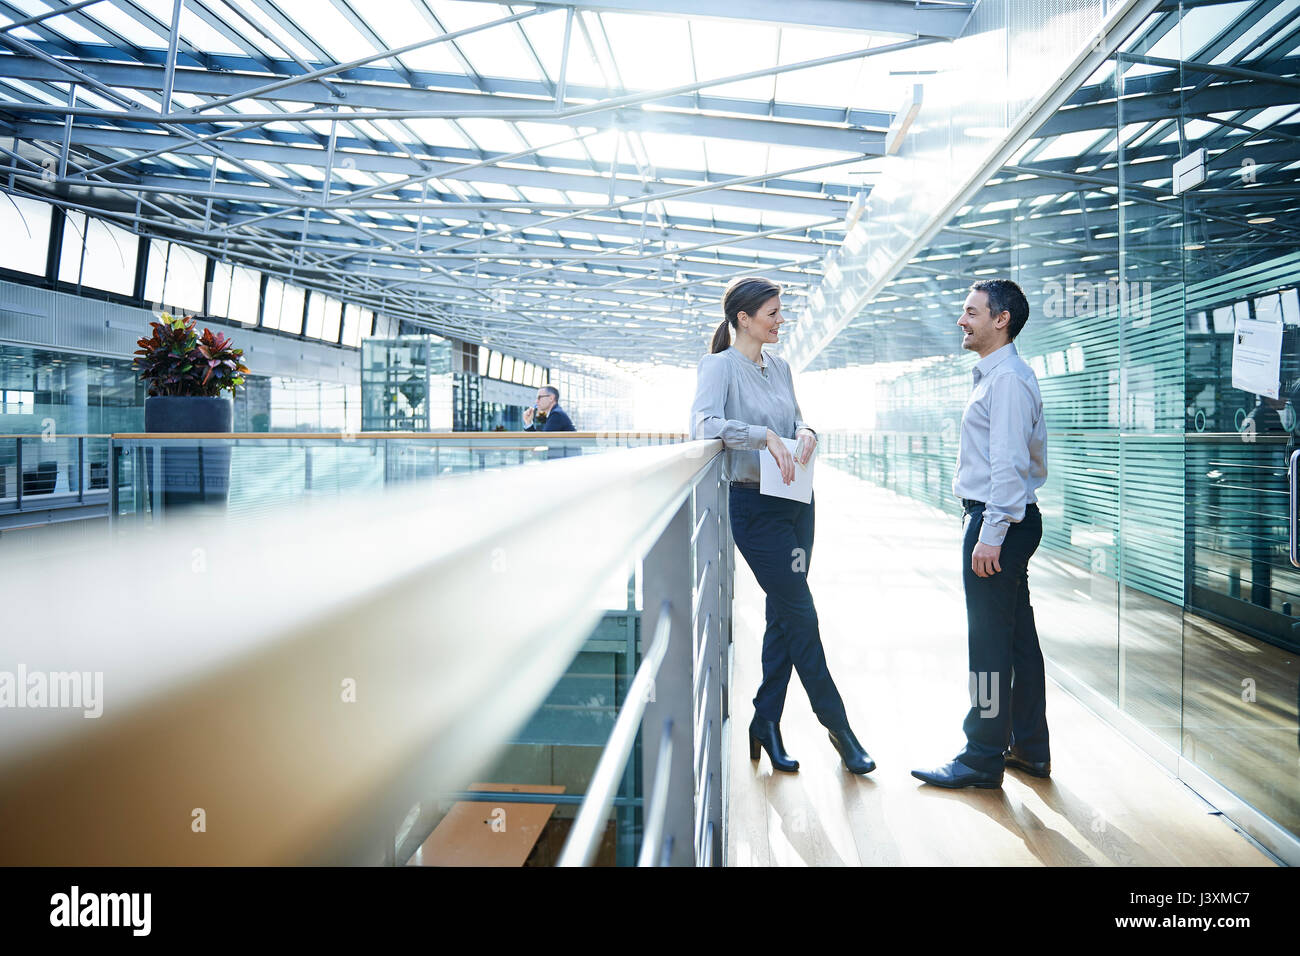 Businessman and woman talking on office balcony - Stock Image